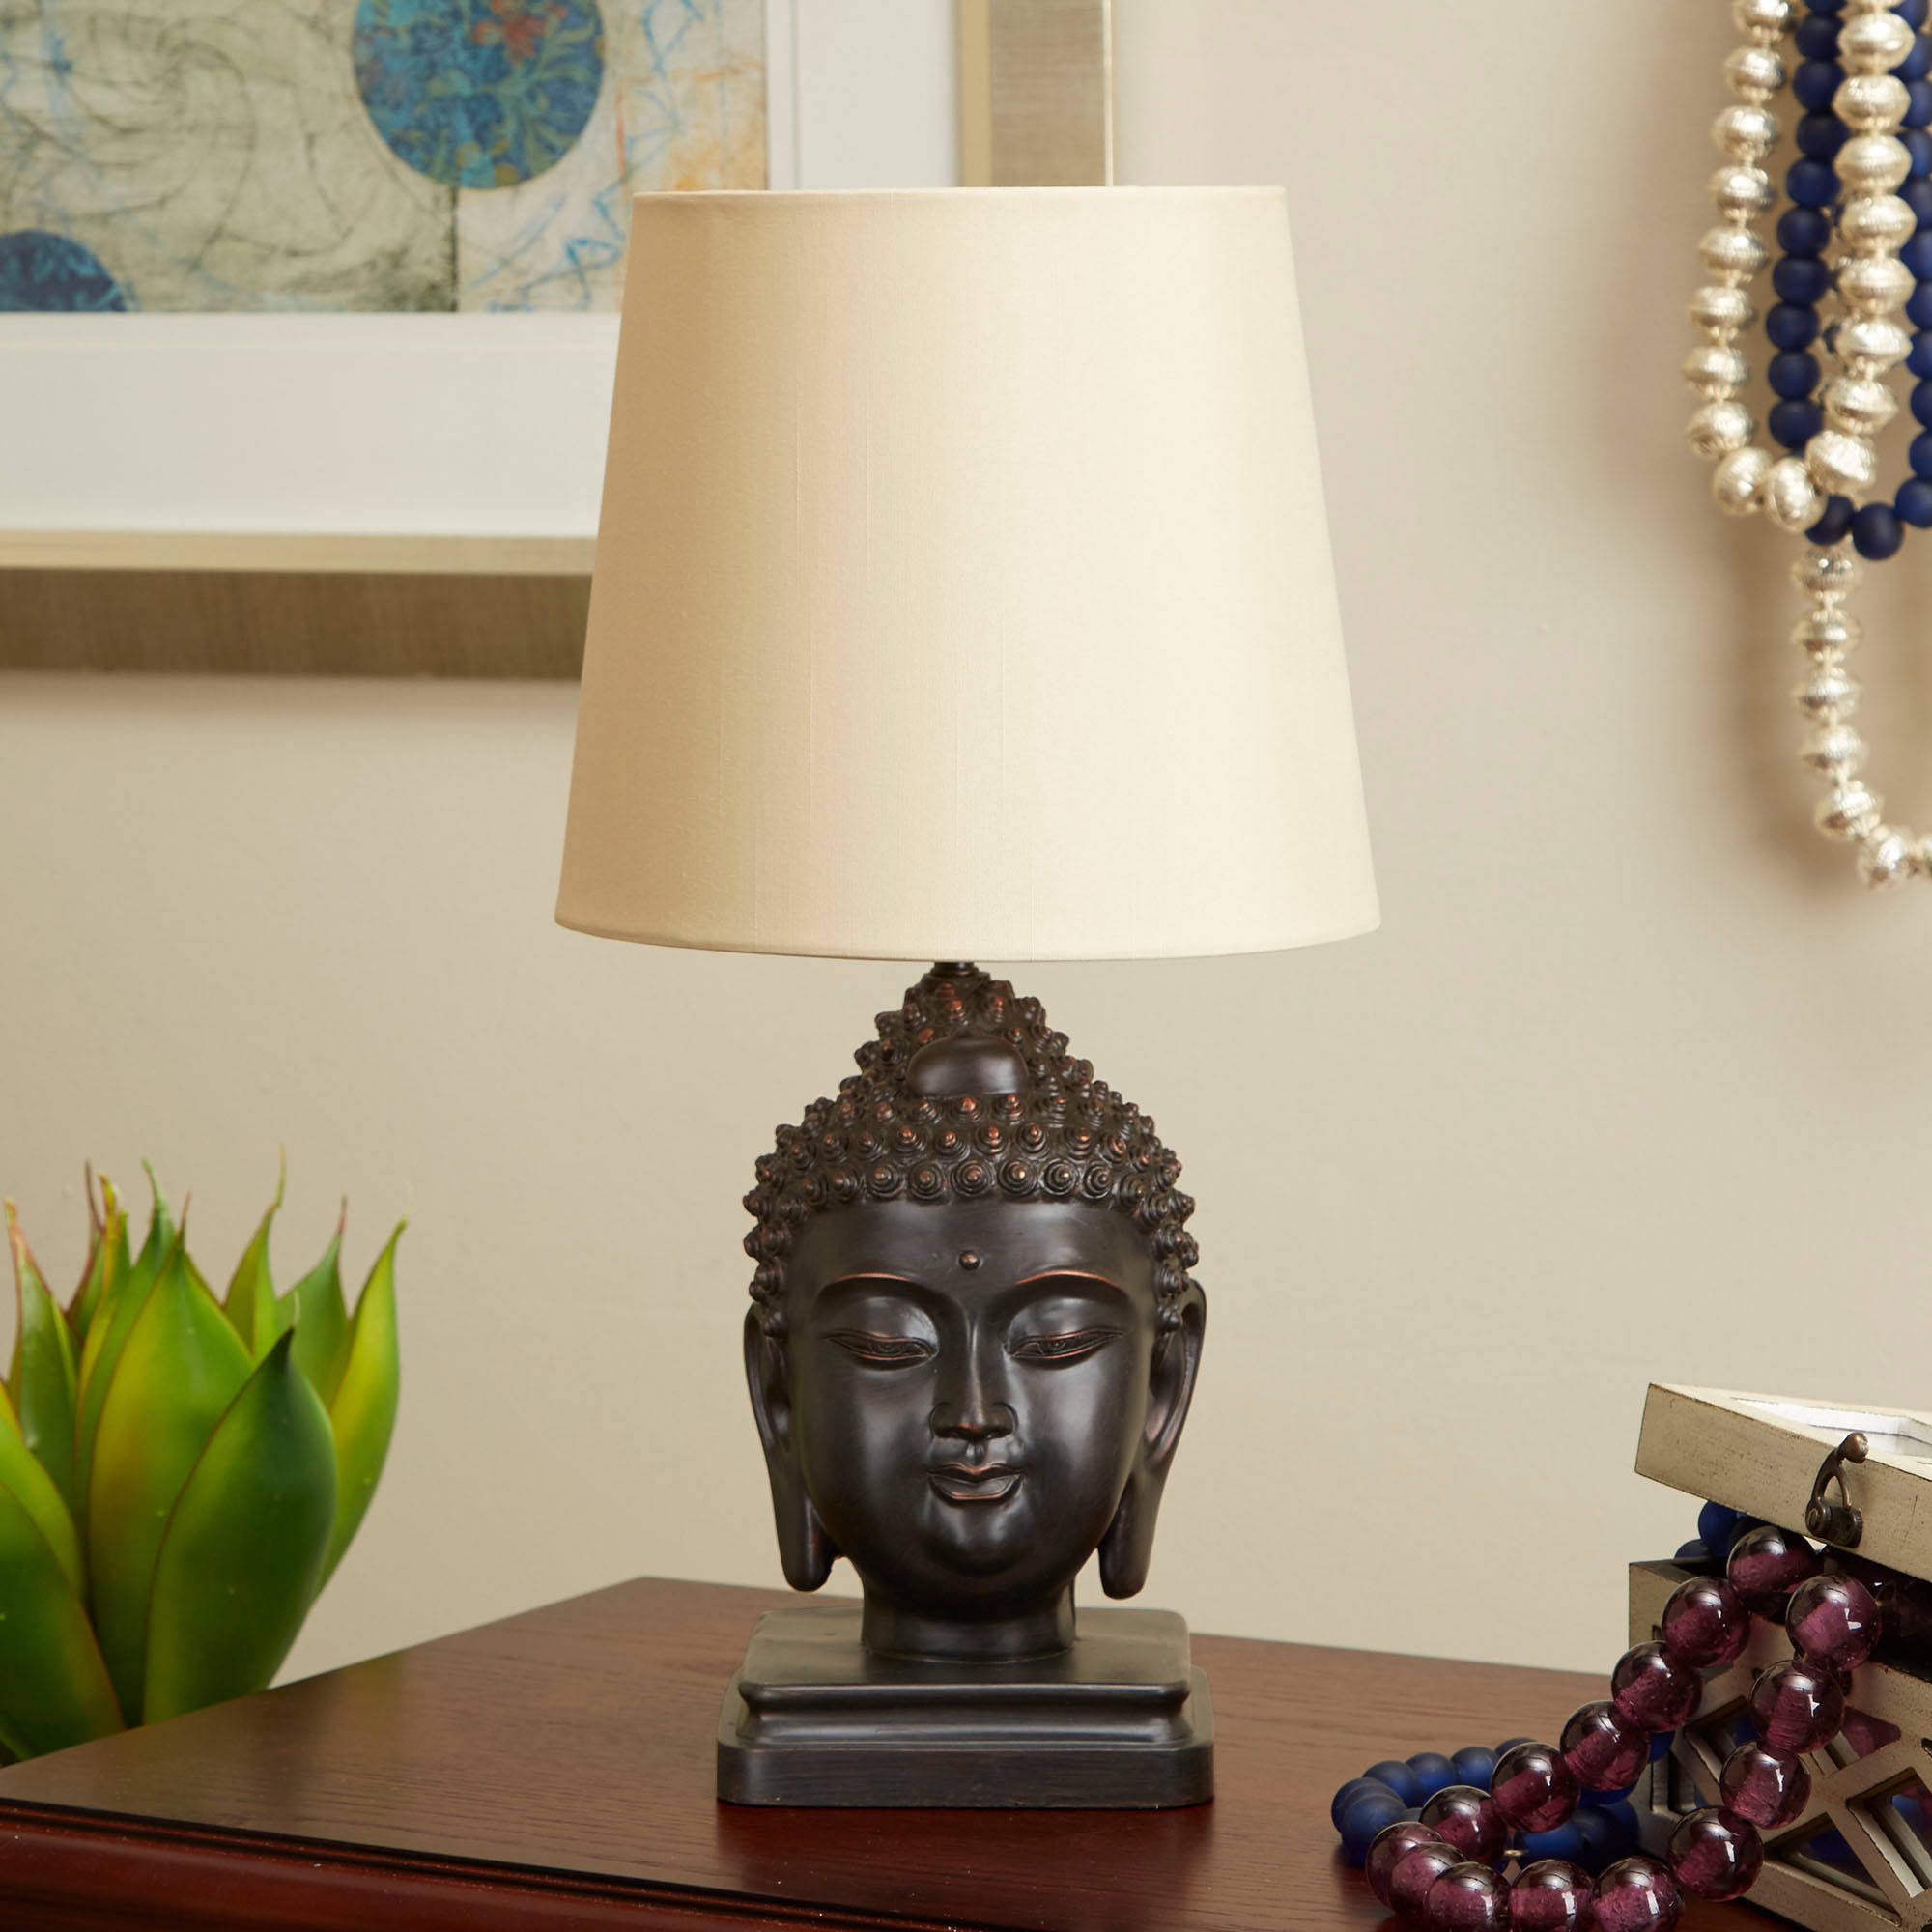 Elegant Better Homes And Gardens Buddha Table Lamp, Oil Rubbed Bronze